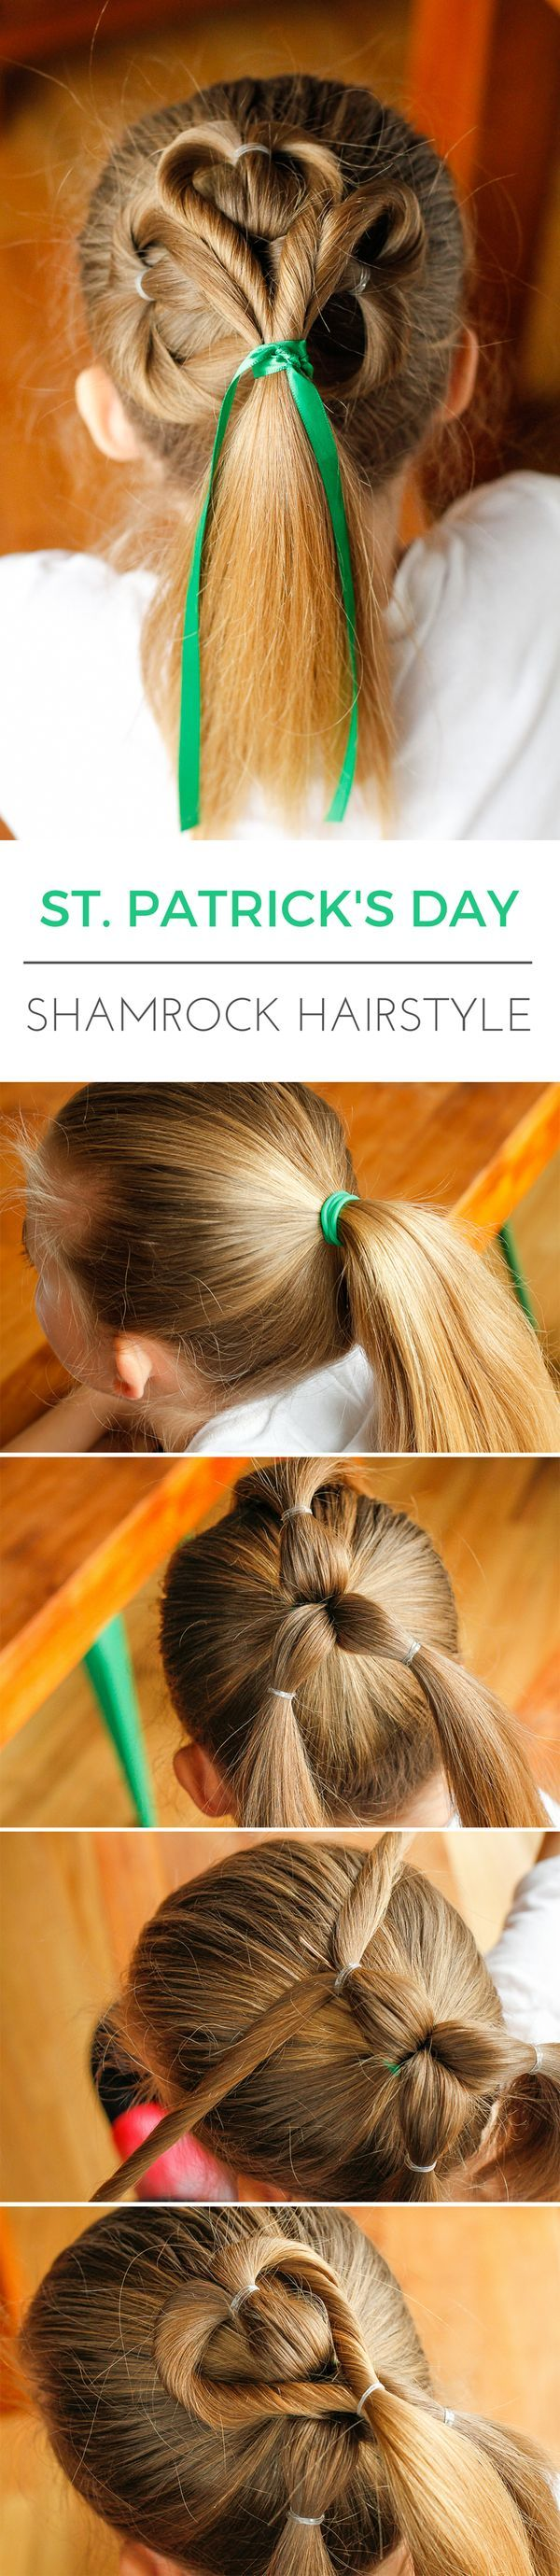 Simple Shamrock Hair -- this adorable St. Patrick's Day shamrock hairstyle is really VERY simple and easy to create with any hair texture! Click on the image for complete step-by-step directions to create this clover leaf effect... | via @unsophisticook on unsophisticook.com